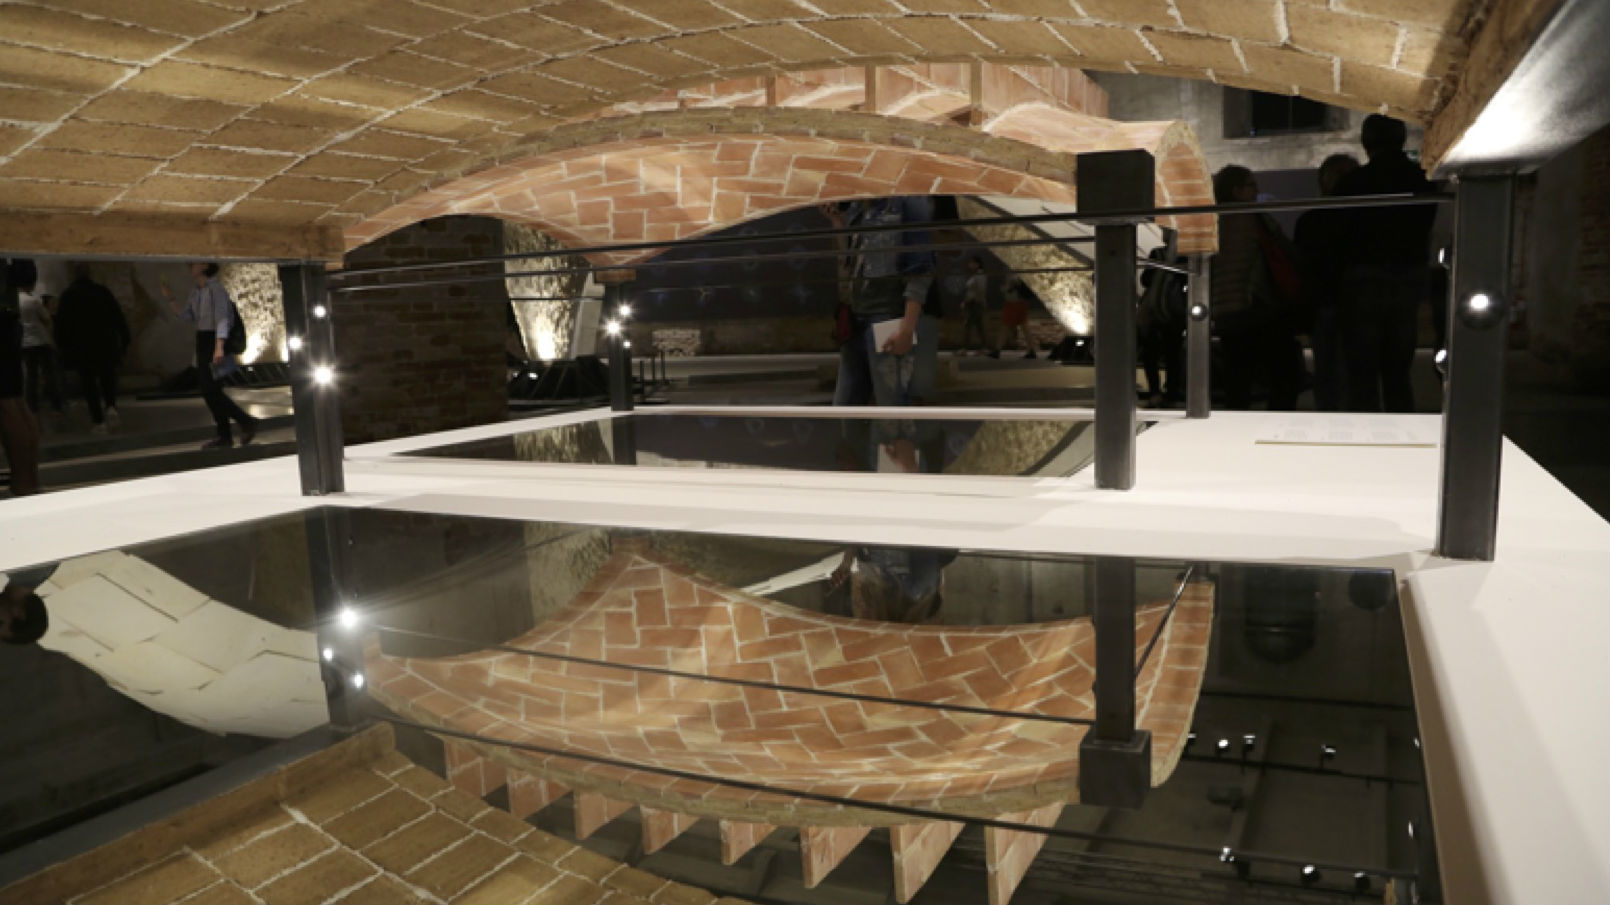 Tile vault floor prototypes from Beyond Bending - exhibition at Venice Biennale 2016